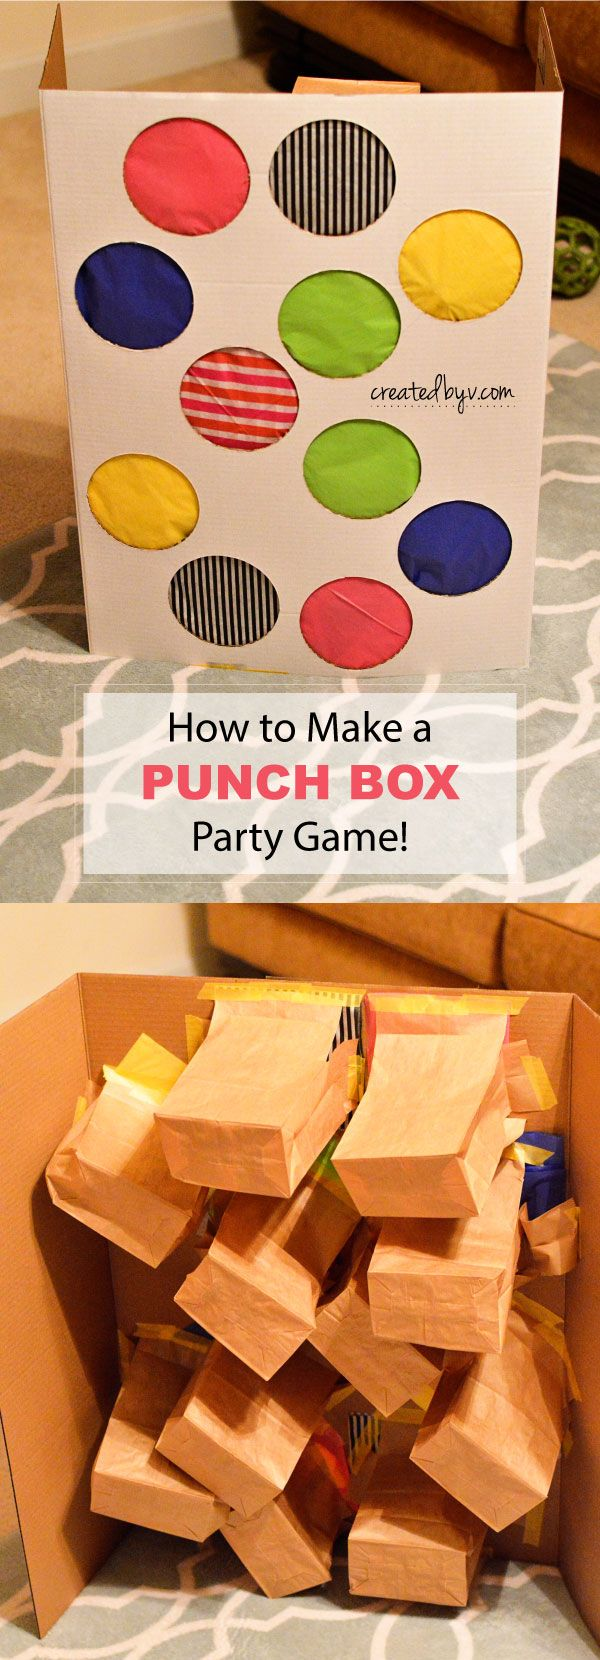 How to Make a Punch Box Party Game